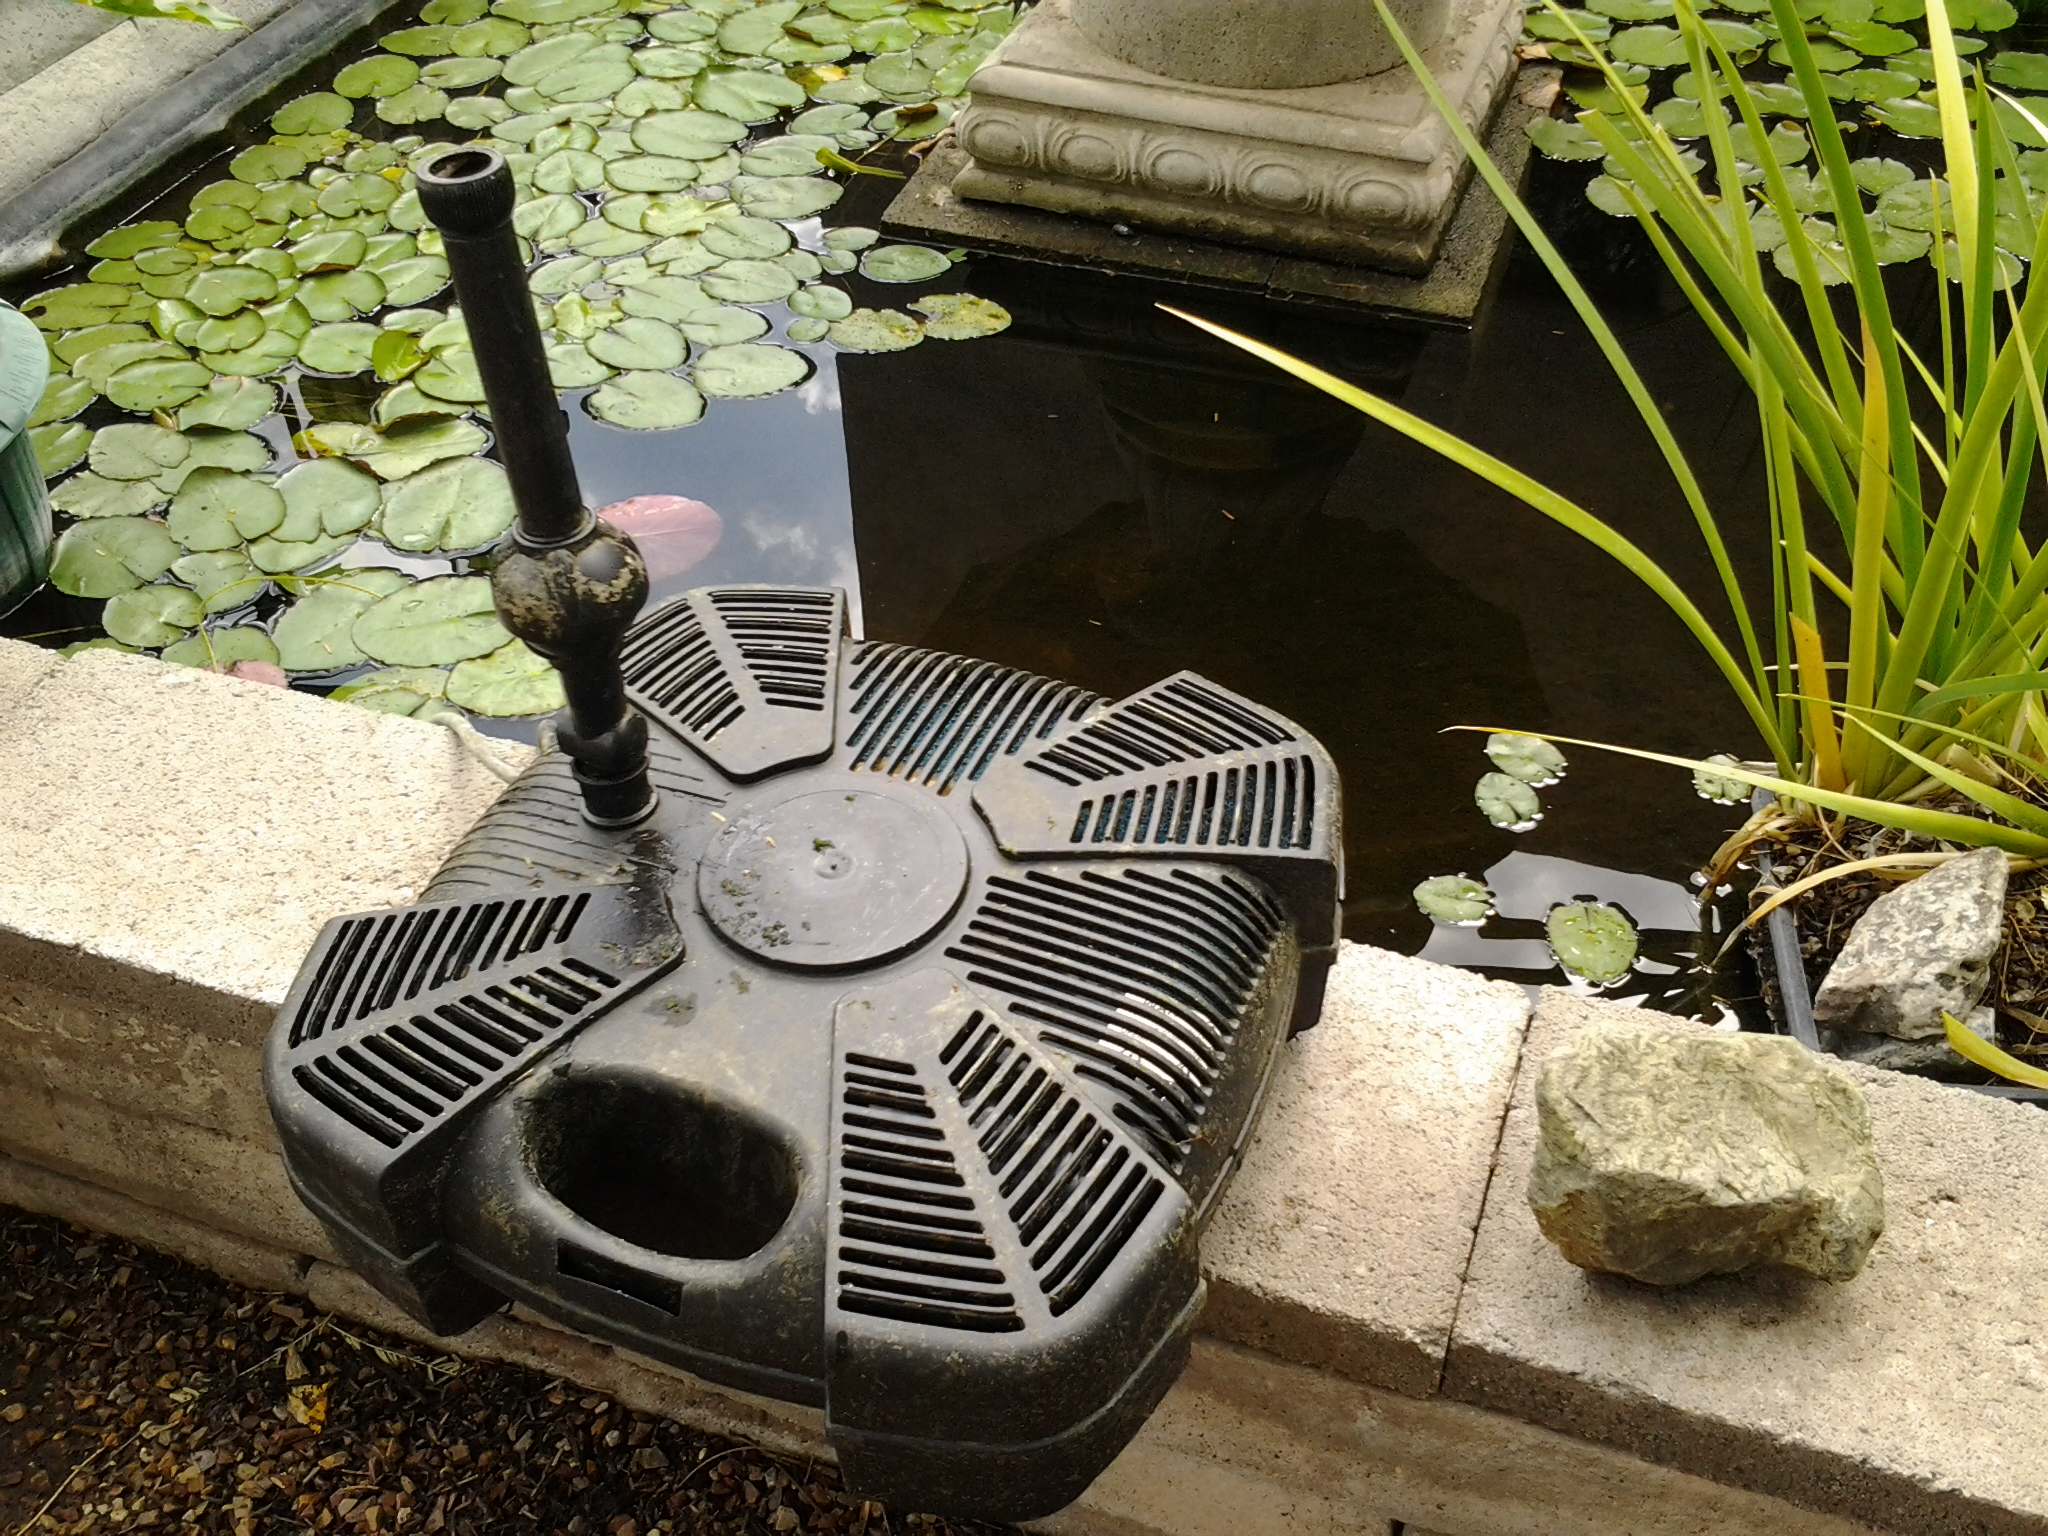 Best pond filter system all in one lifegard pump with uv for Best pond pump for small pond